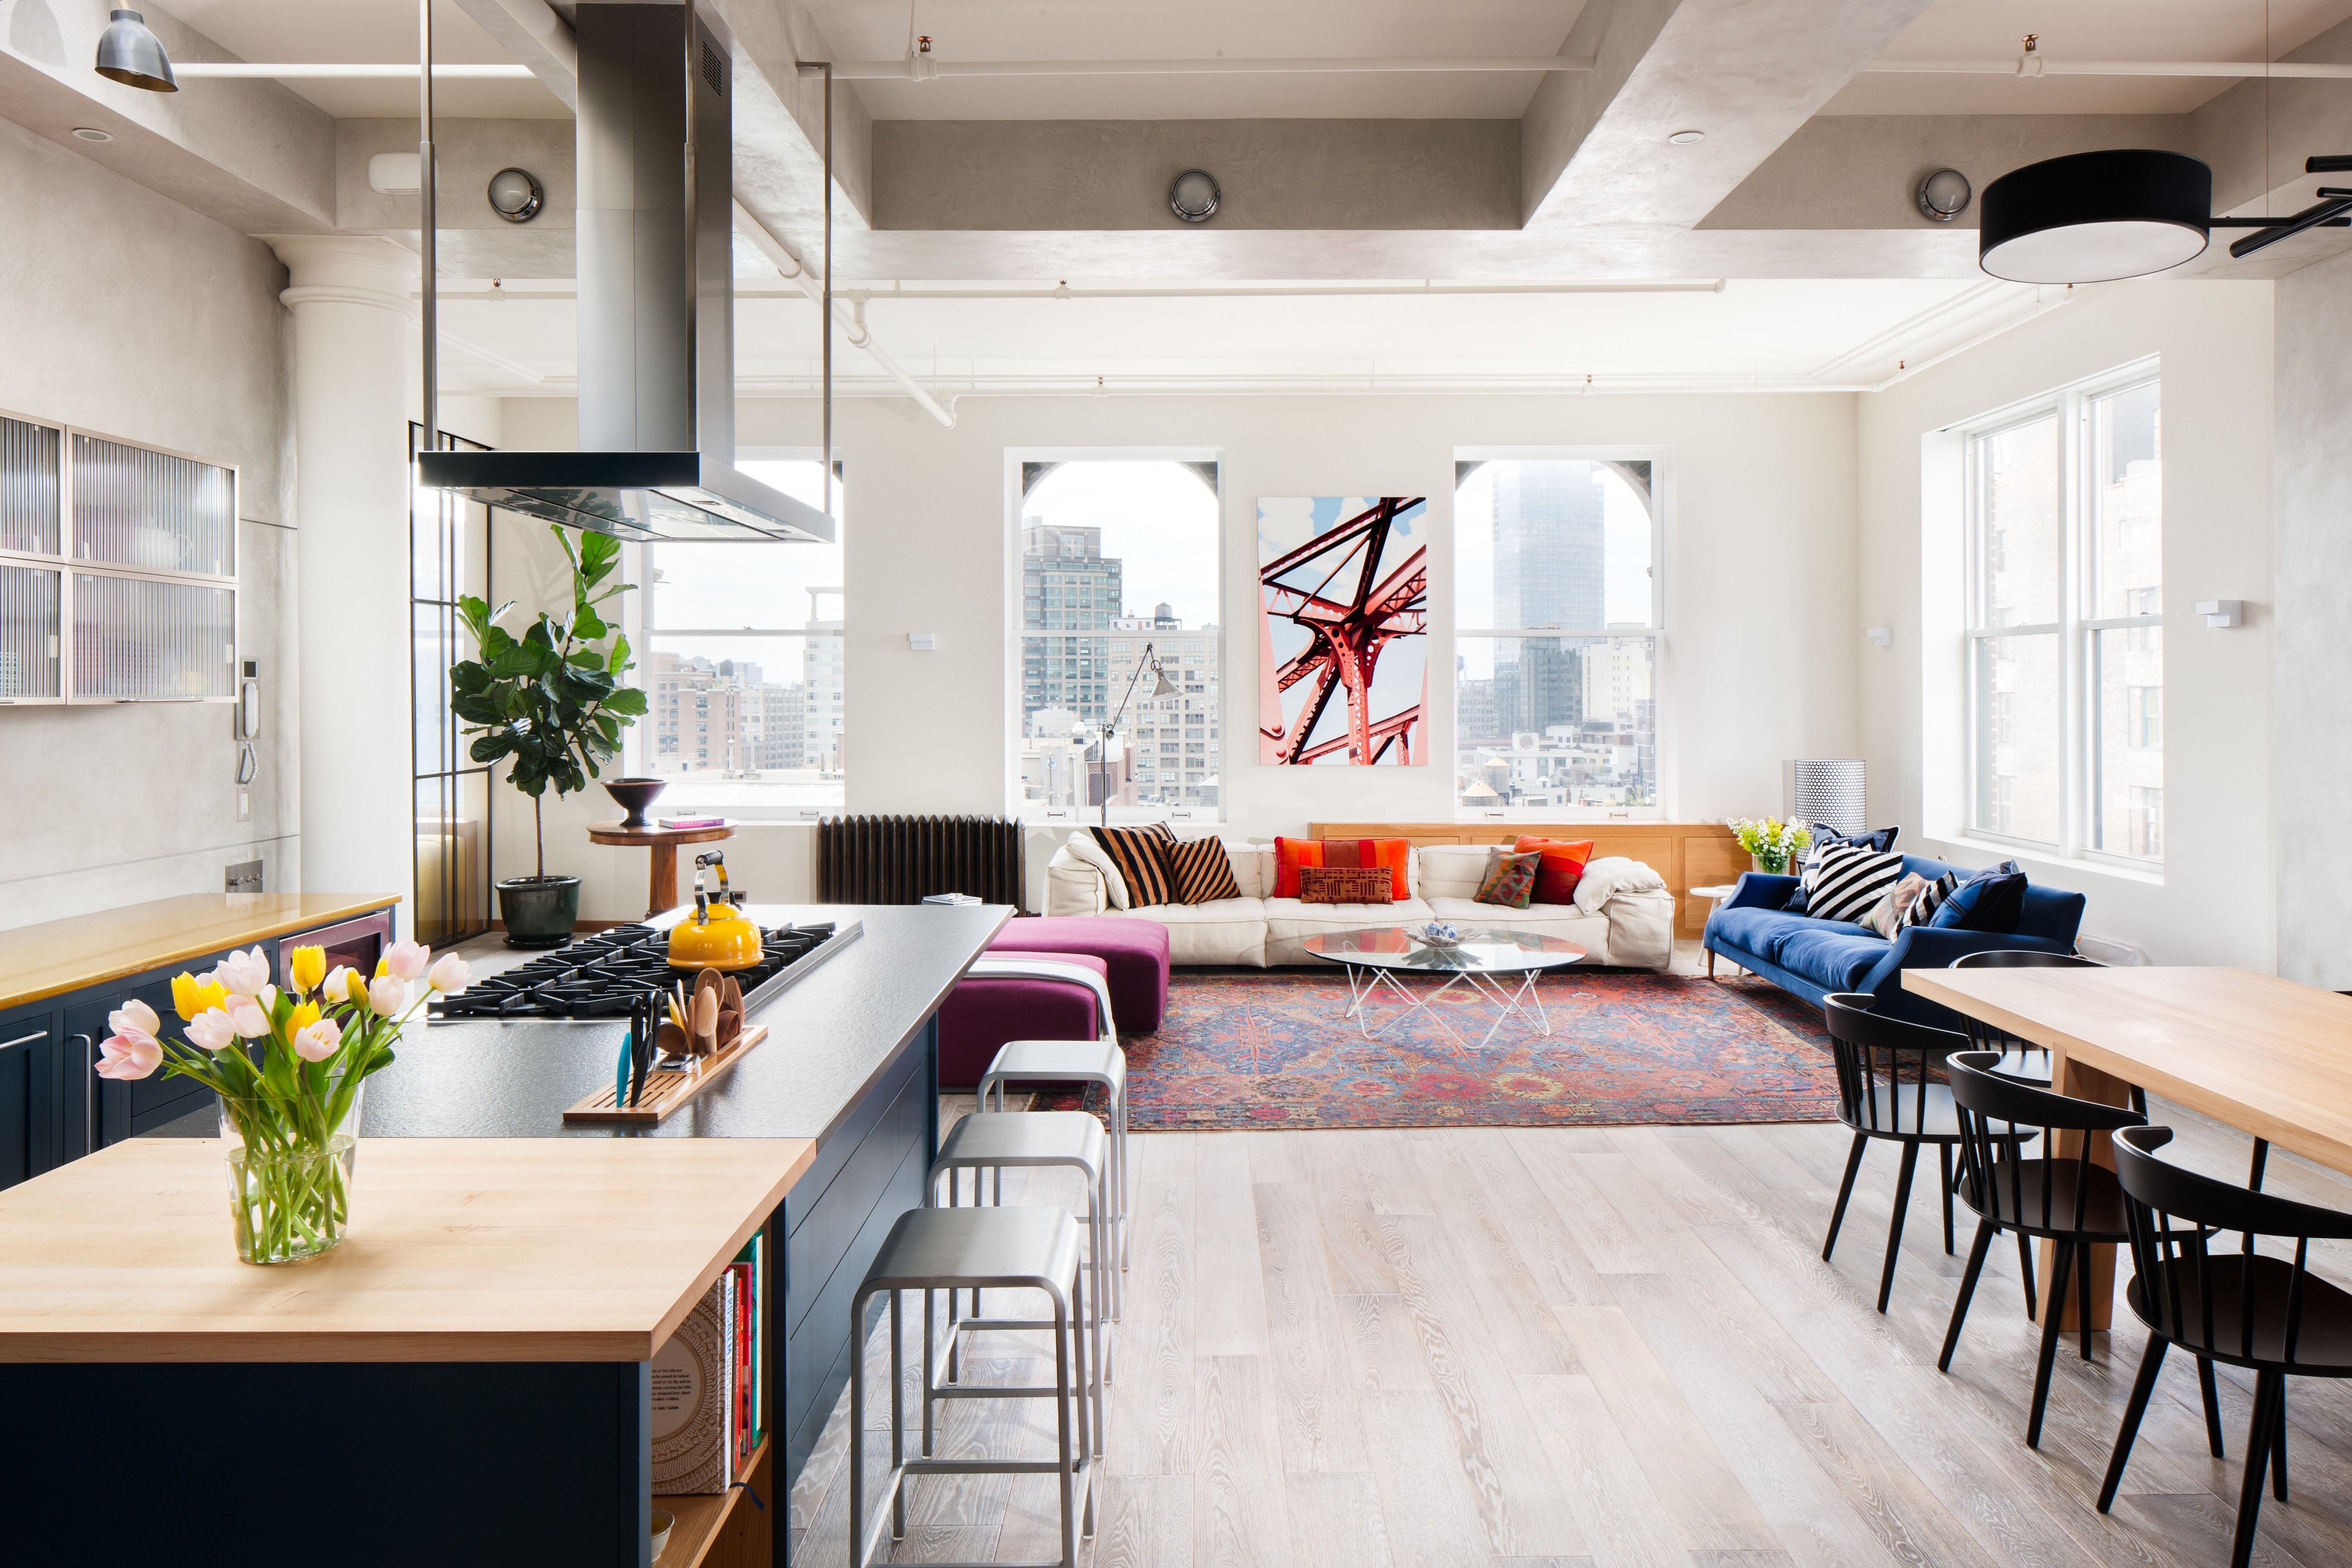 Get This Awesome Home Decor Look On Purehome.com   476 Broadway Loft By  Casamanara